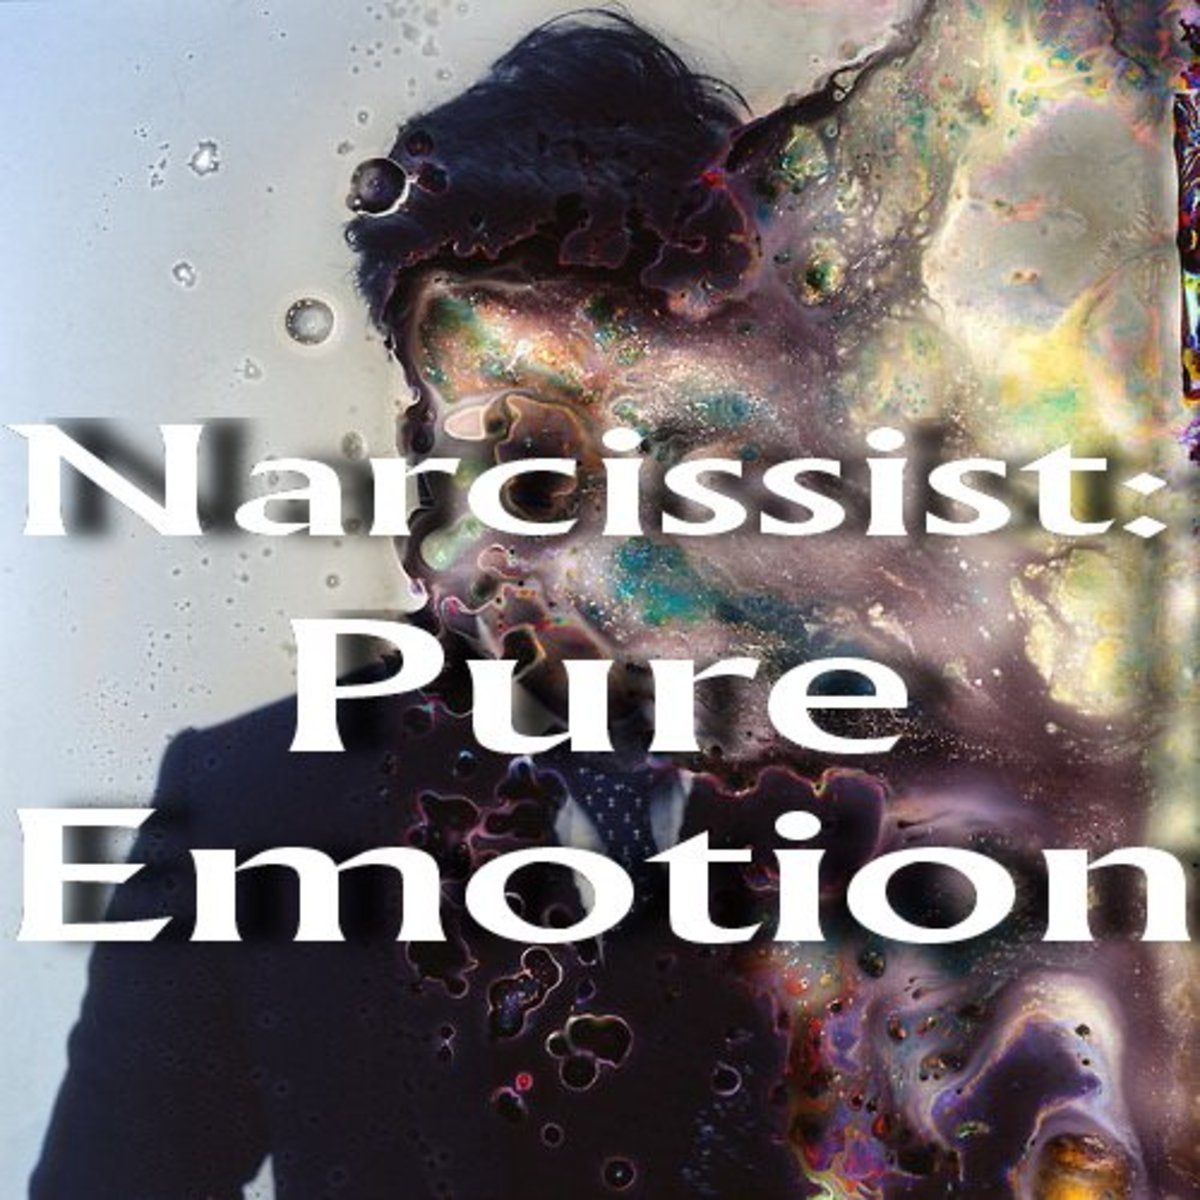 Why You Cannot Communicate With a Narcissist